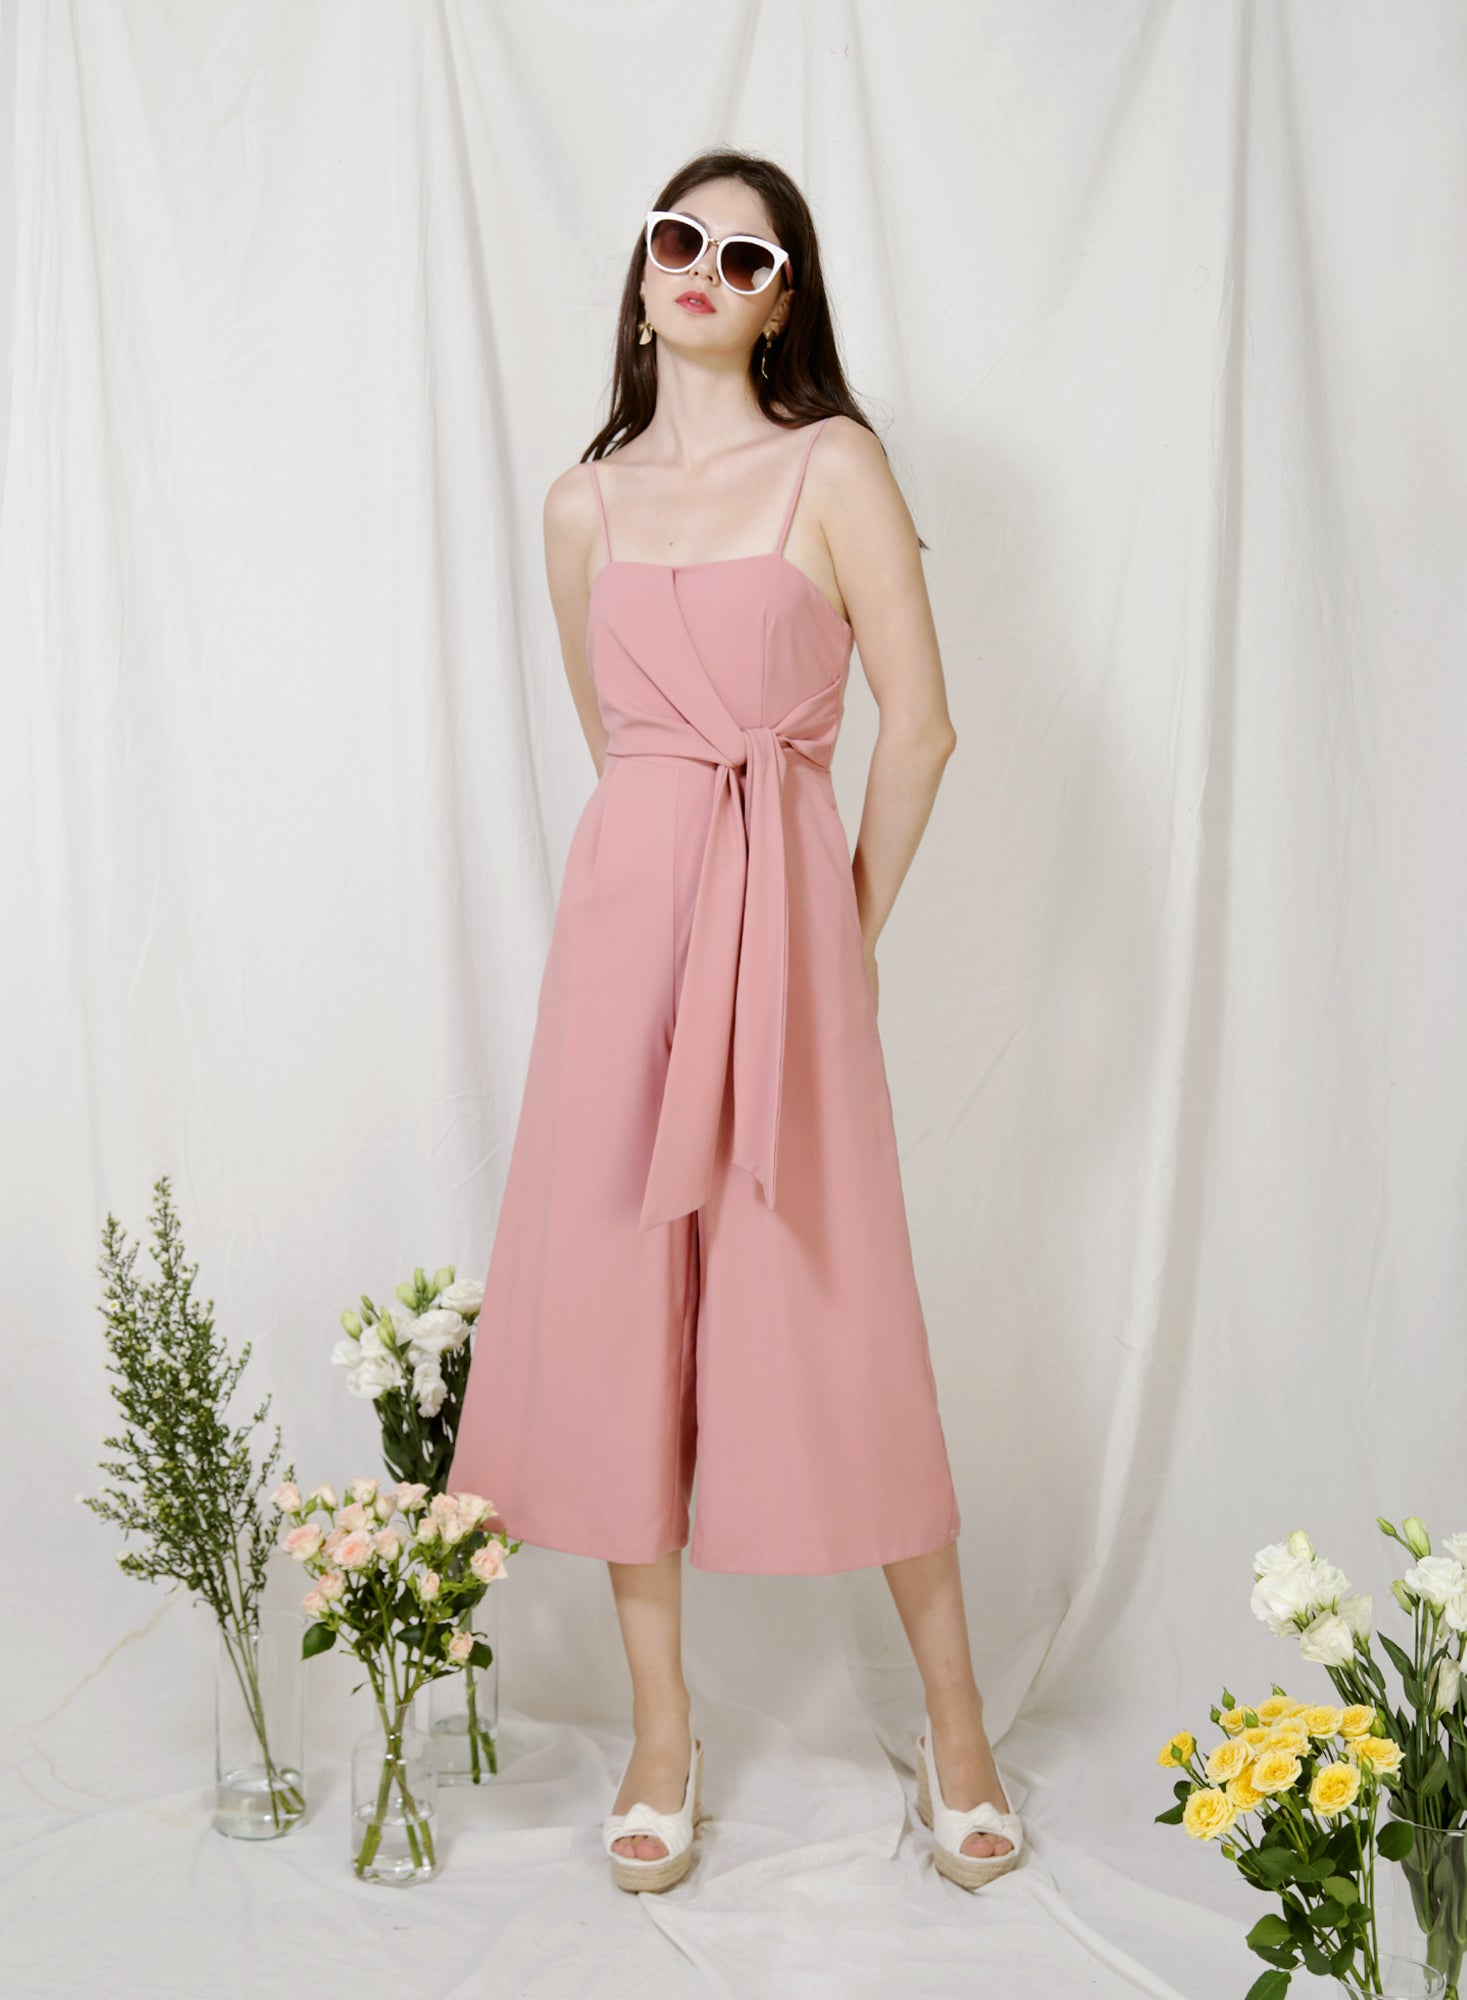 Preen Tie Front Jumpsuit (Blush) at $ 45.00 only sold at And Well Dressed Online Fashion Store Singapore